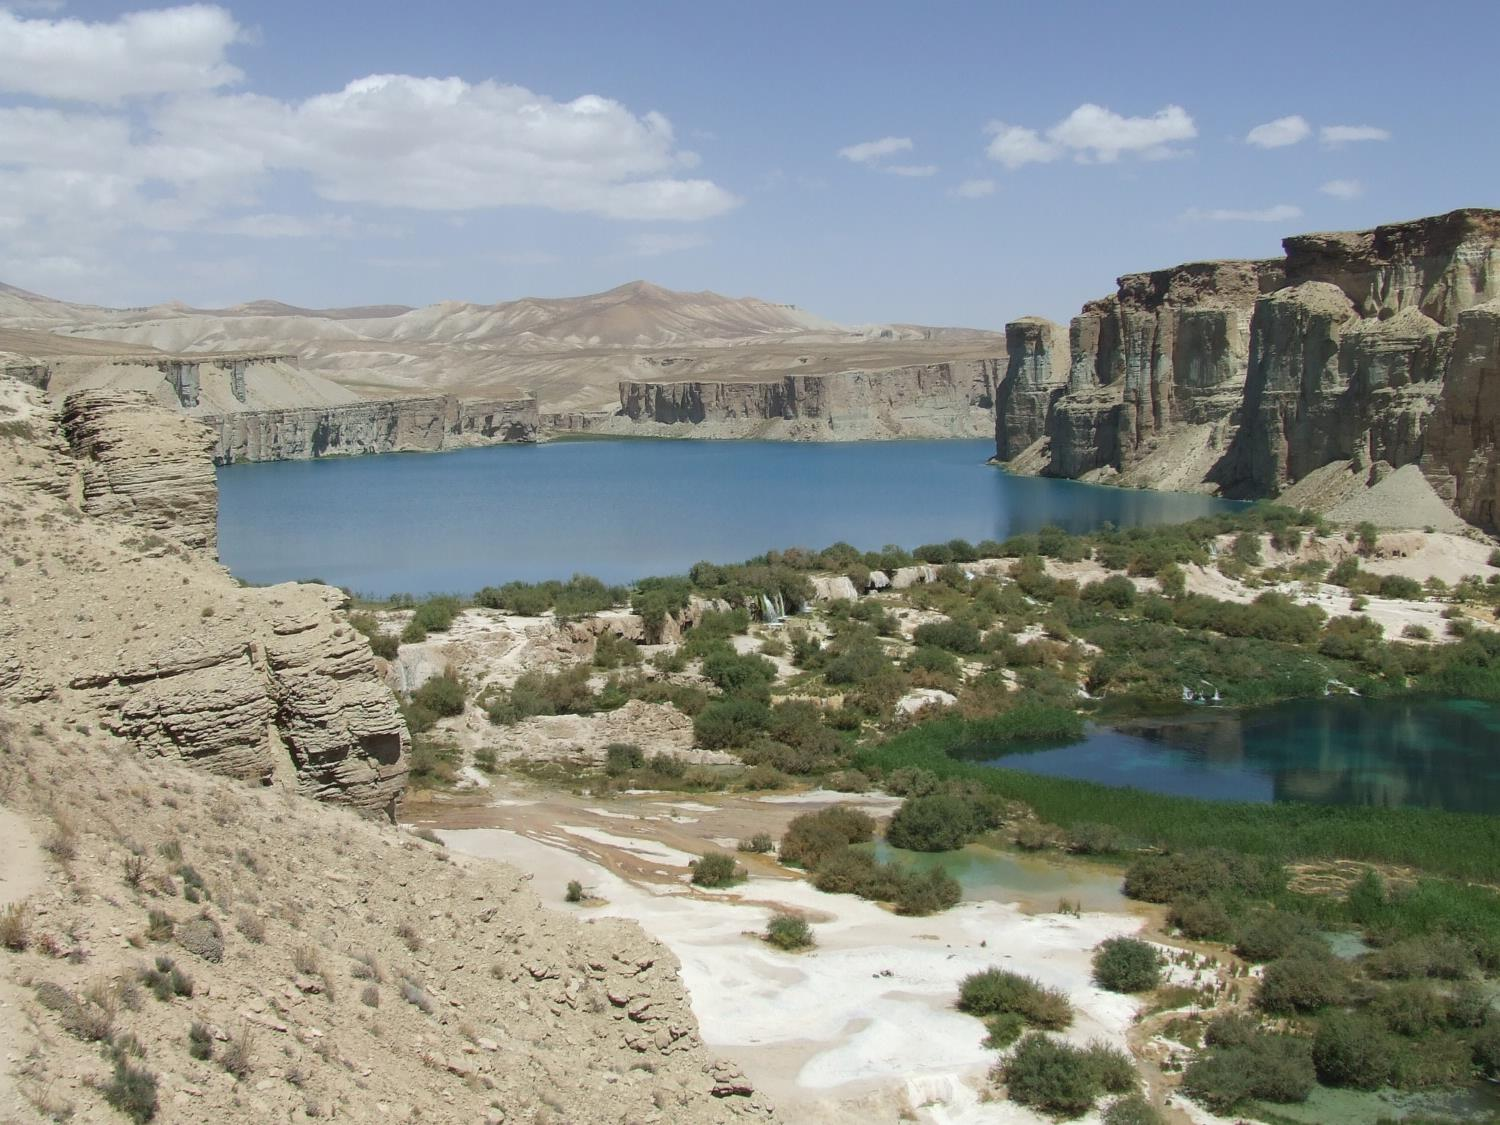 Afghanistan's Turquoise Lakes in Bamyan Province